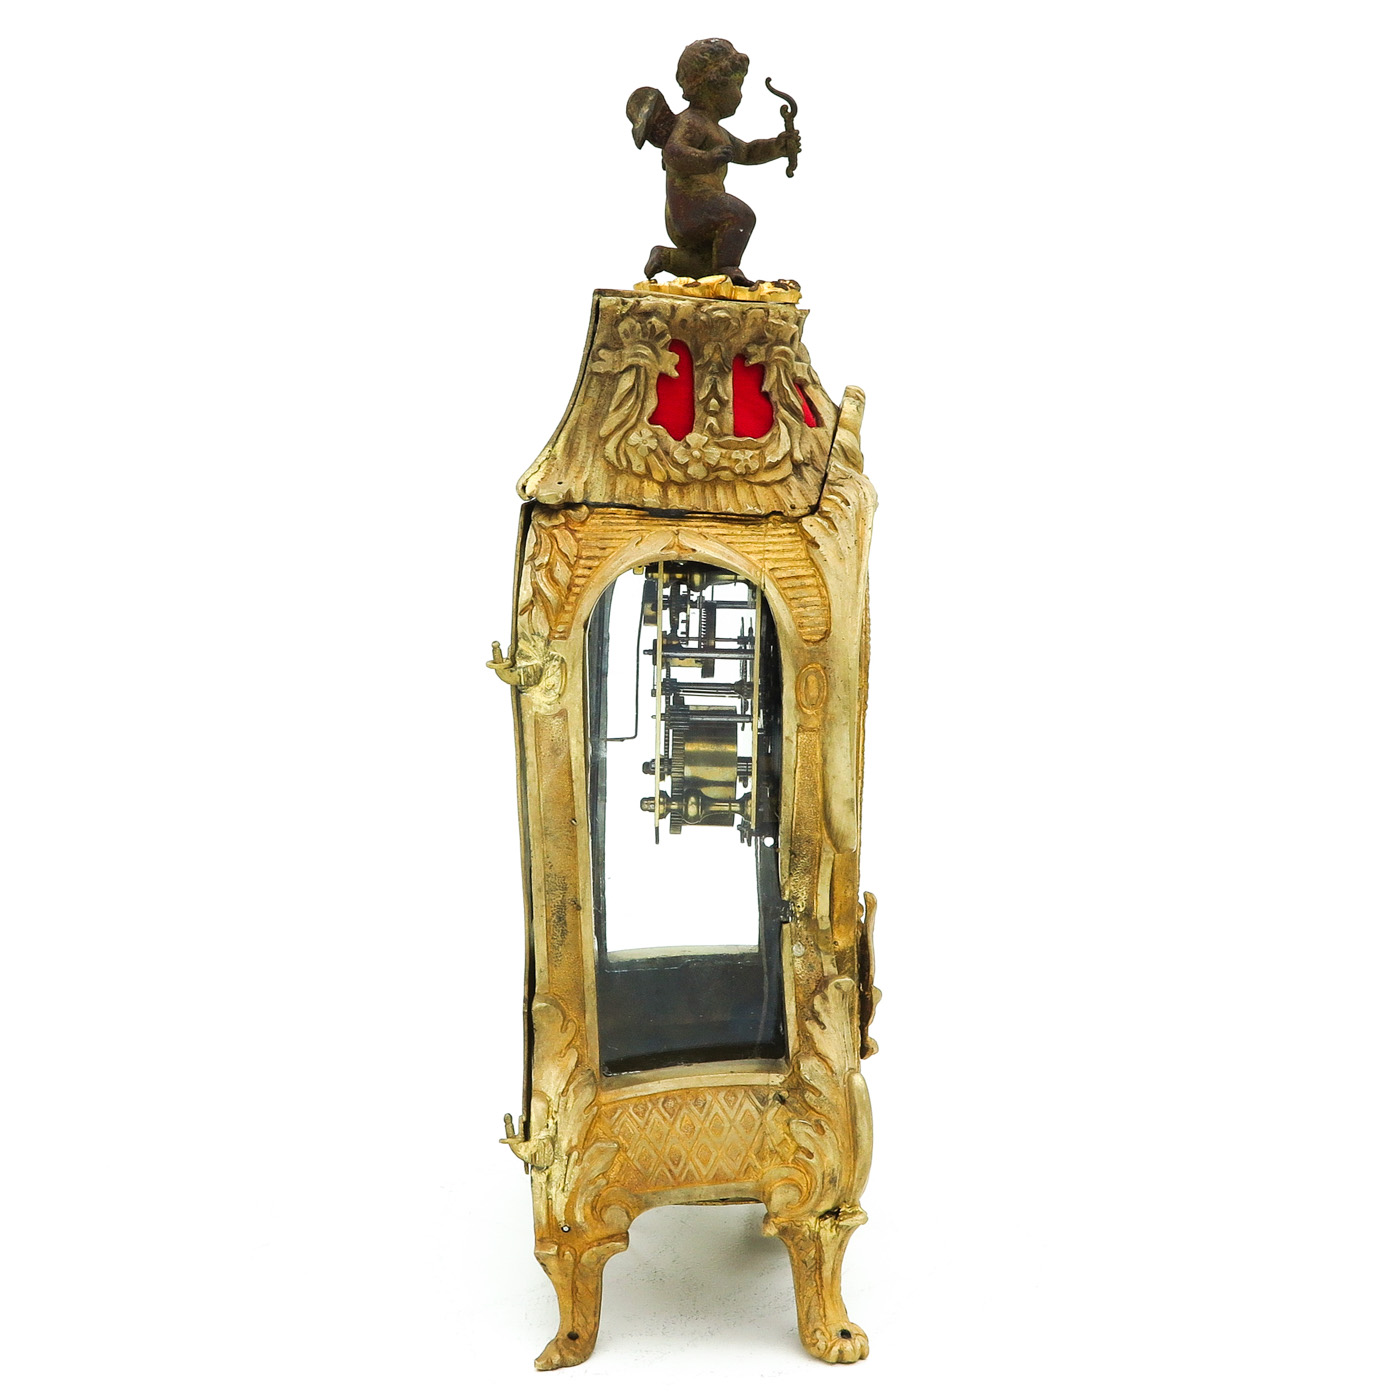 Lot 1165 - An 18th Century Signed French Pendulum